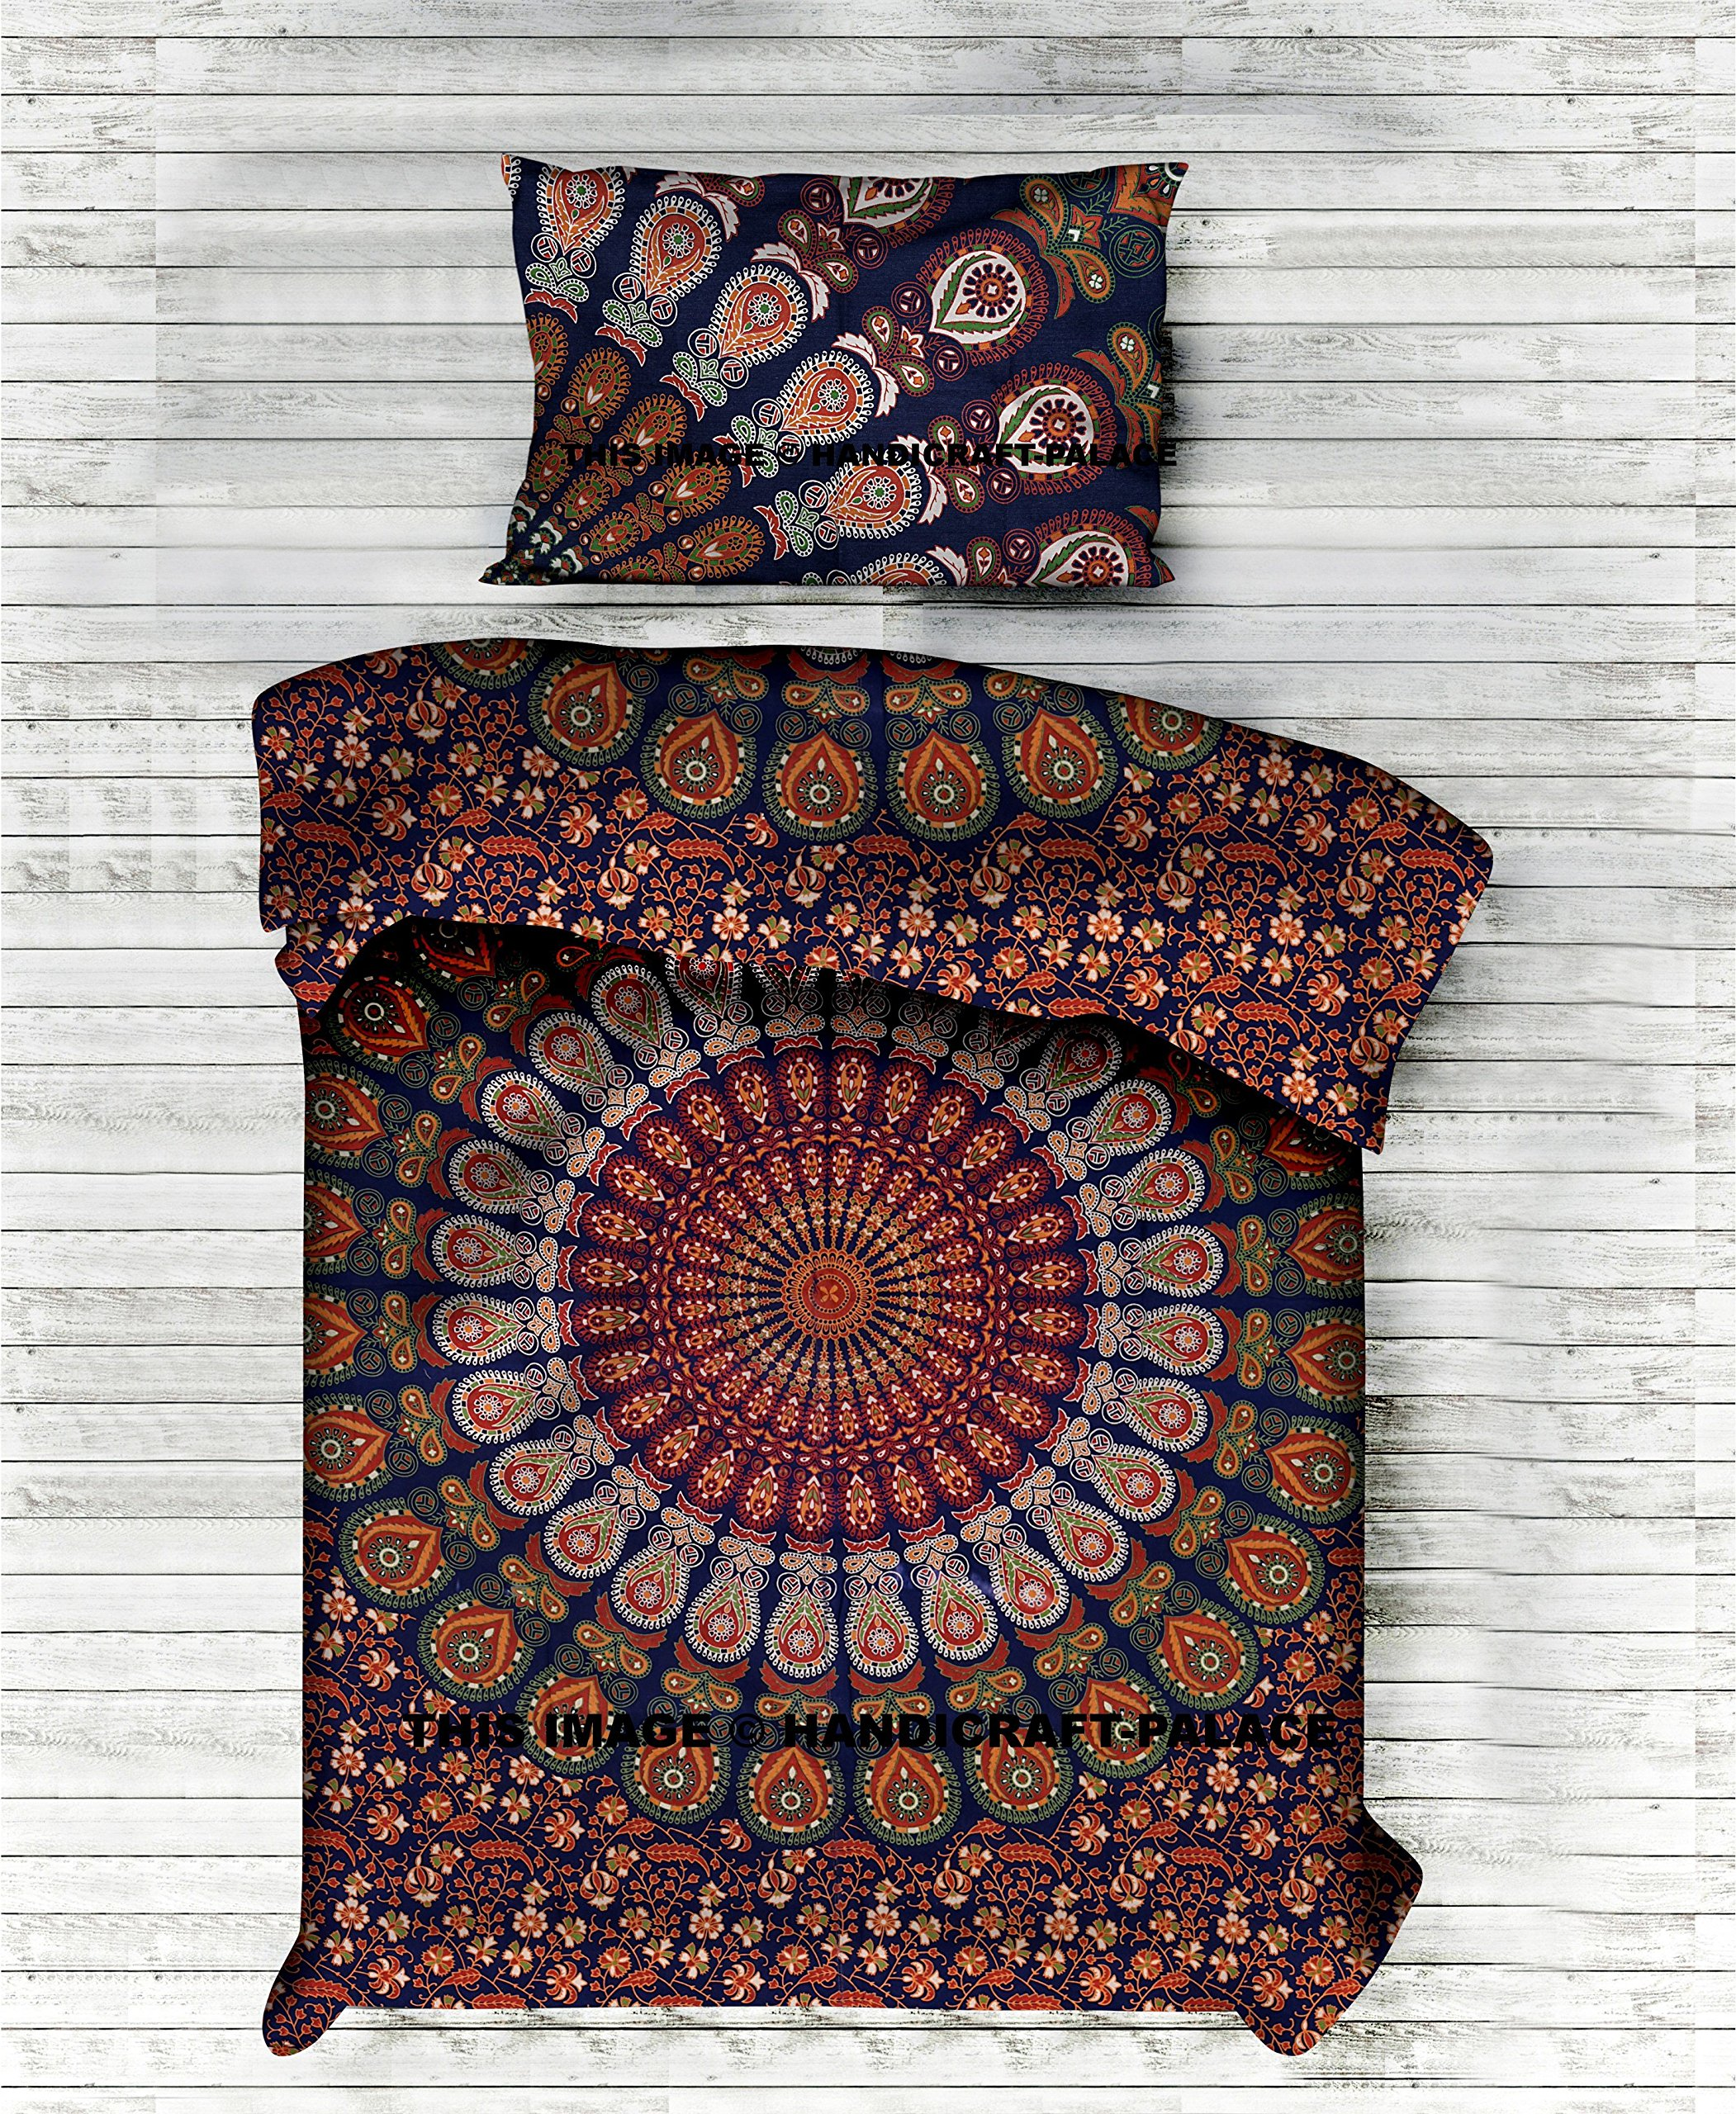 Indian Art Cotton Duvet Covers By ''Handicraftspalace'' , Peacock Mandala Duvet Cover Twin size Hippie Quilt Doona Cotton Cover Throw Bohemian Gypsy